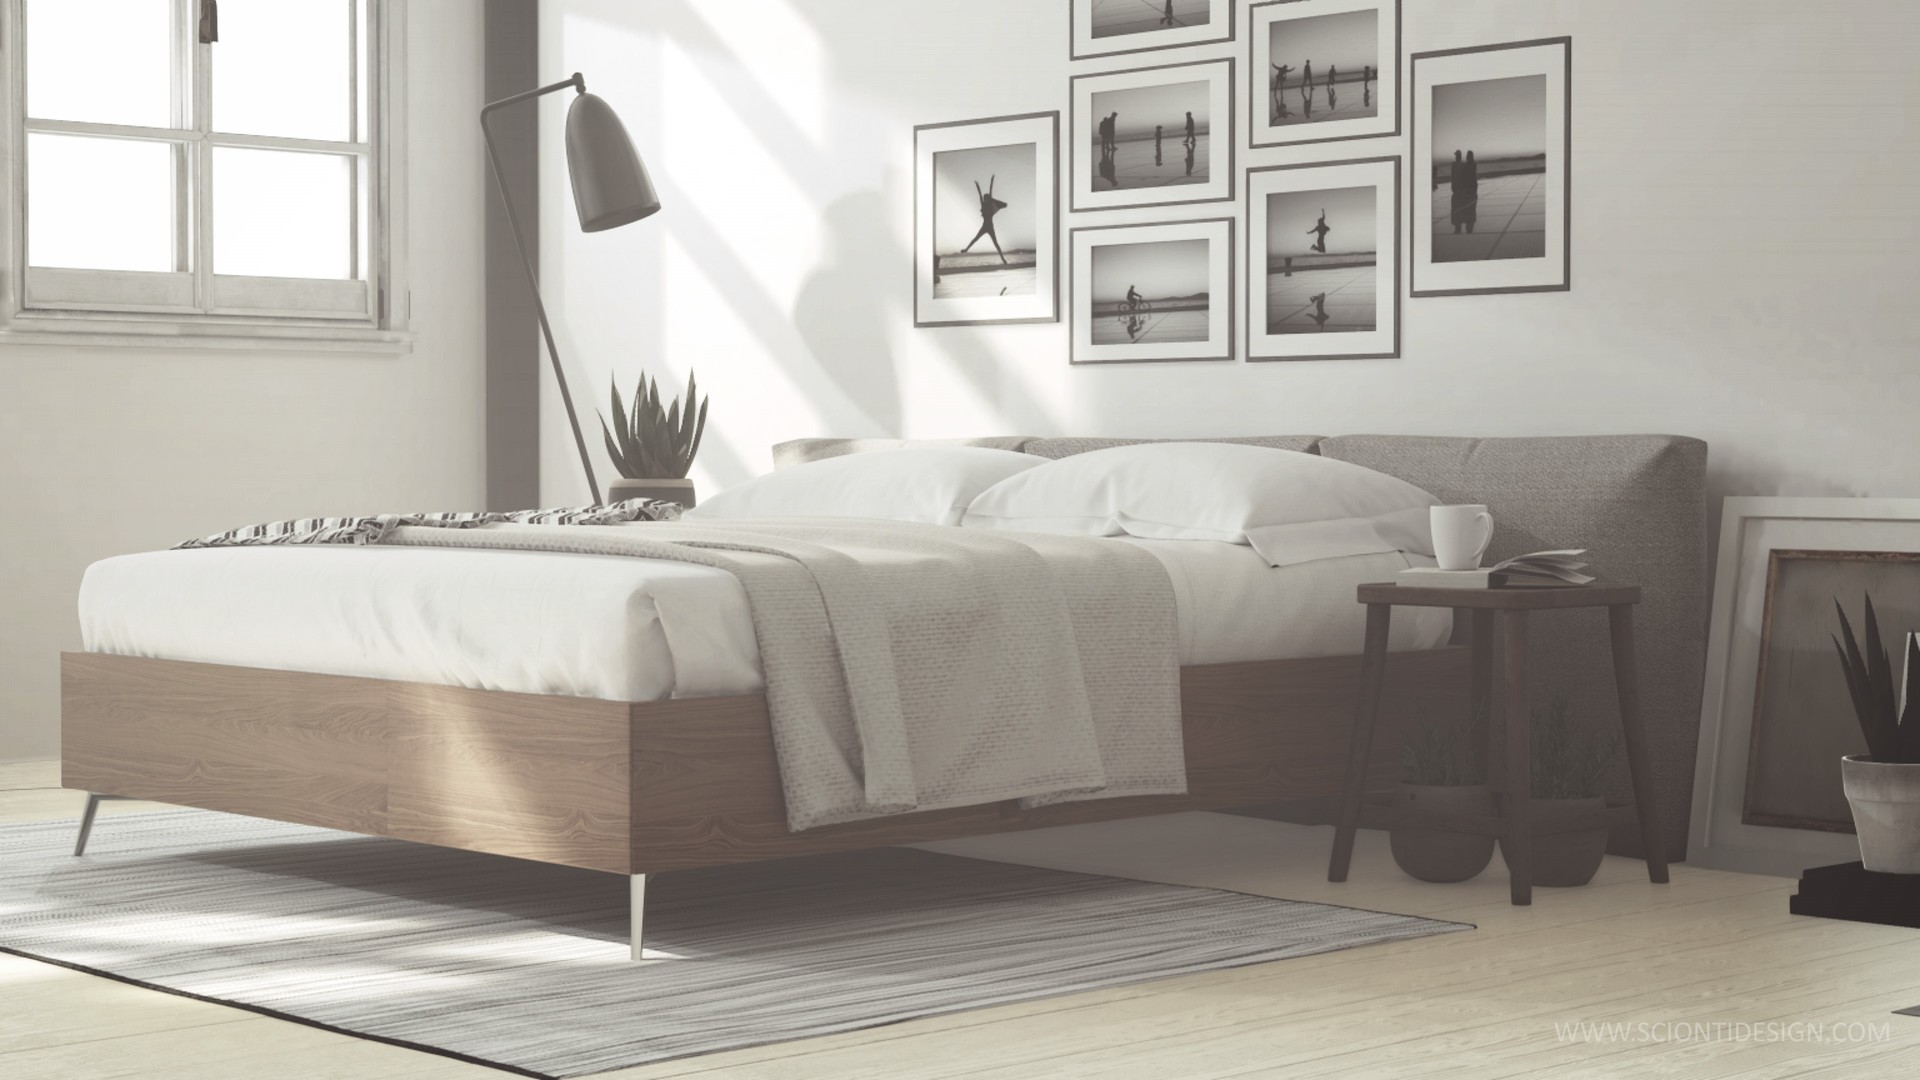 ArtStation - Created with Unreal Engine 4 20 and vray plugin